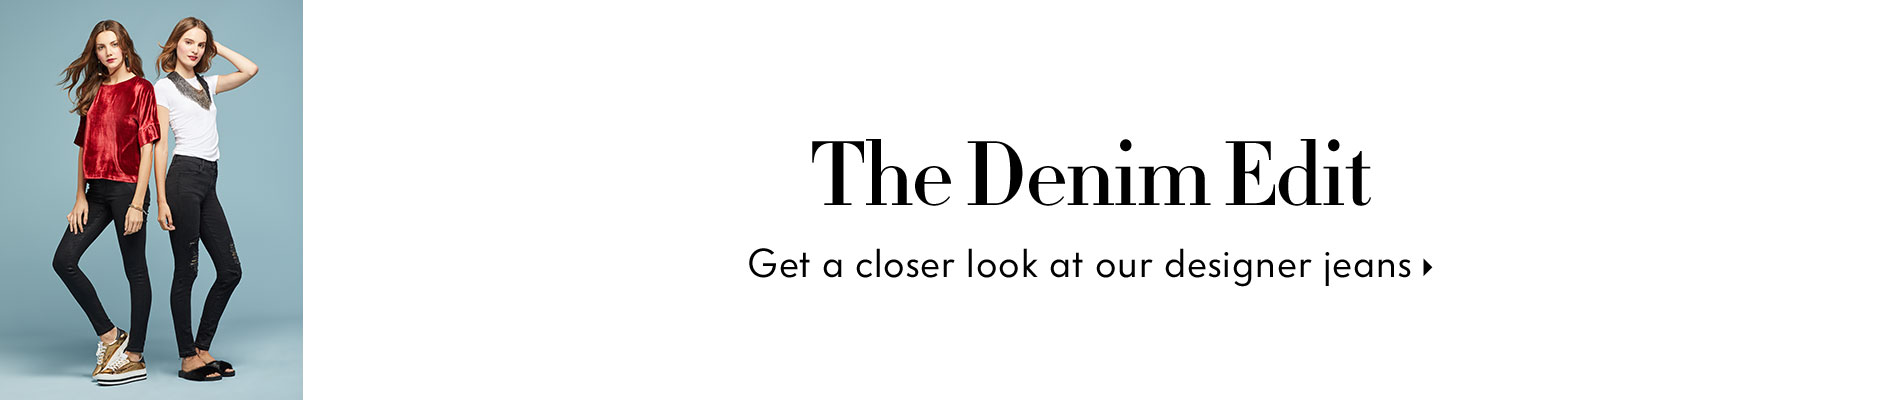 The Denim Edit - Get a closer look at our designer jeans